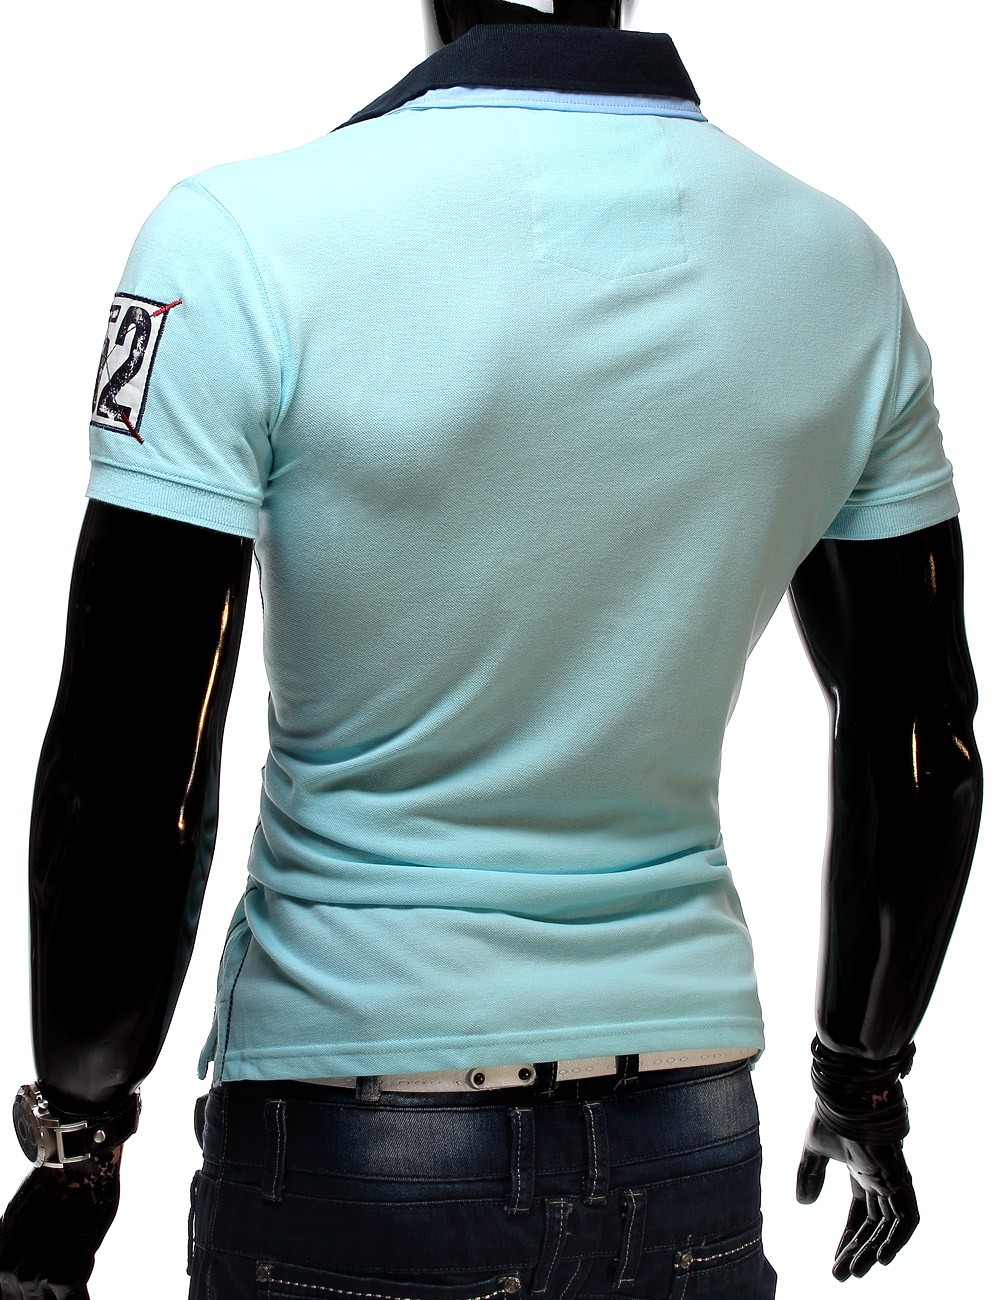 mc herren poloshirt t shirt polo polohemd kurzarm slim fit marine blue water ebay. Black Bedroom Furniture Sets. Home Design Ideas